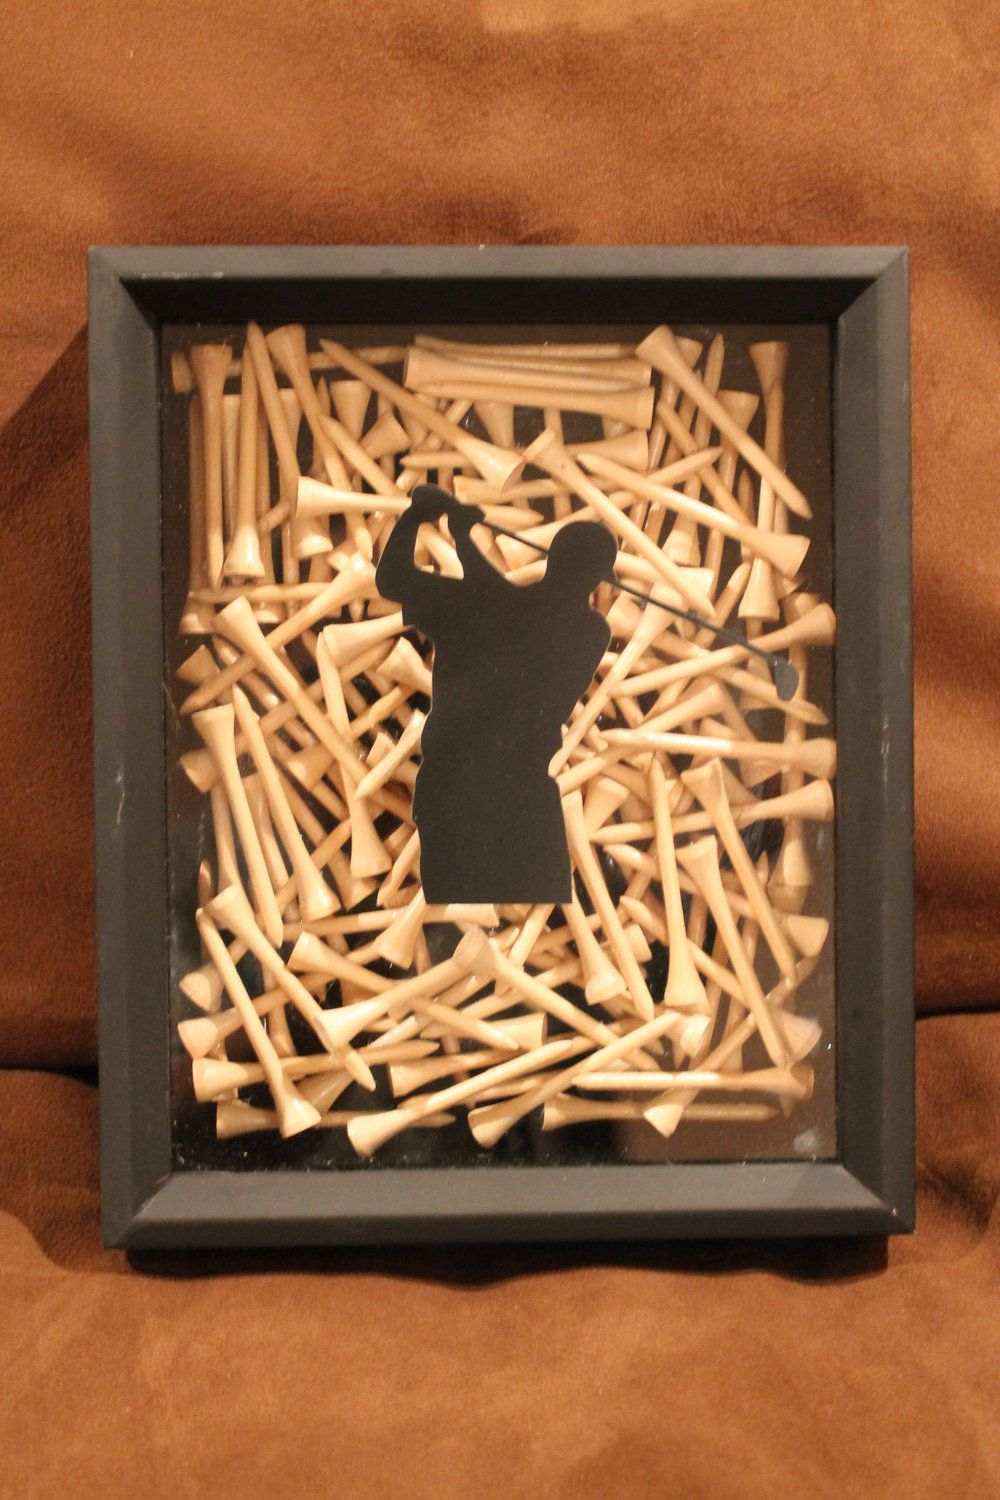 Superieur Black Shadow Box Golf Display, Handmade With Golf Tees For Home Decor Or  For The Office Of Any Golfer.